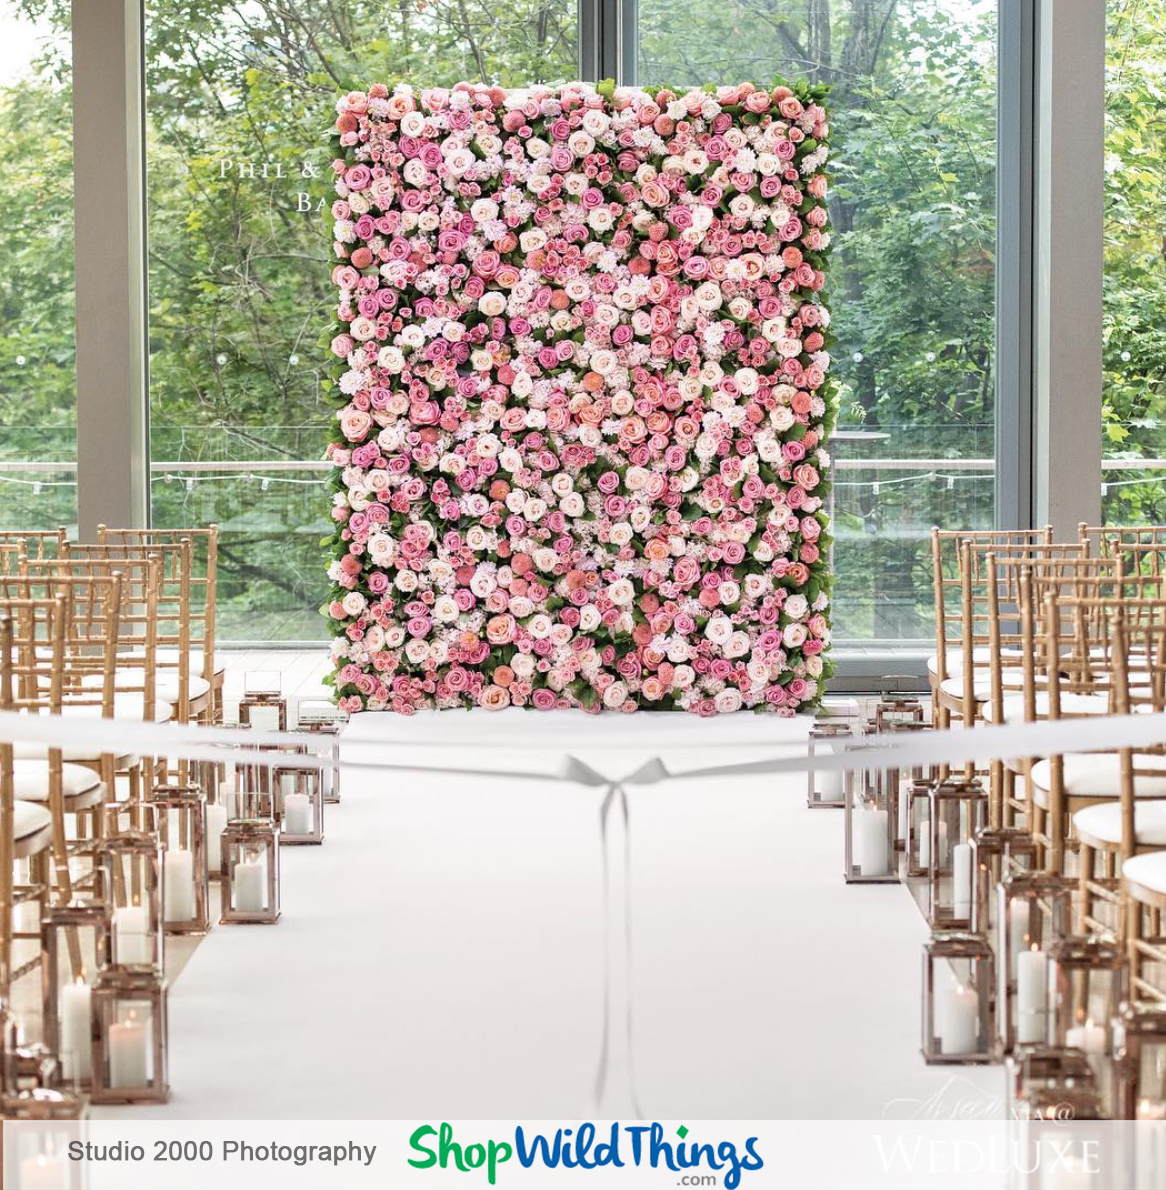 Spectacular Silks:  Using Faux Florals Effectively in Ceremonies and Receptions